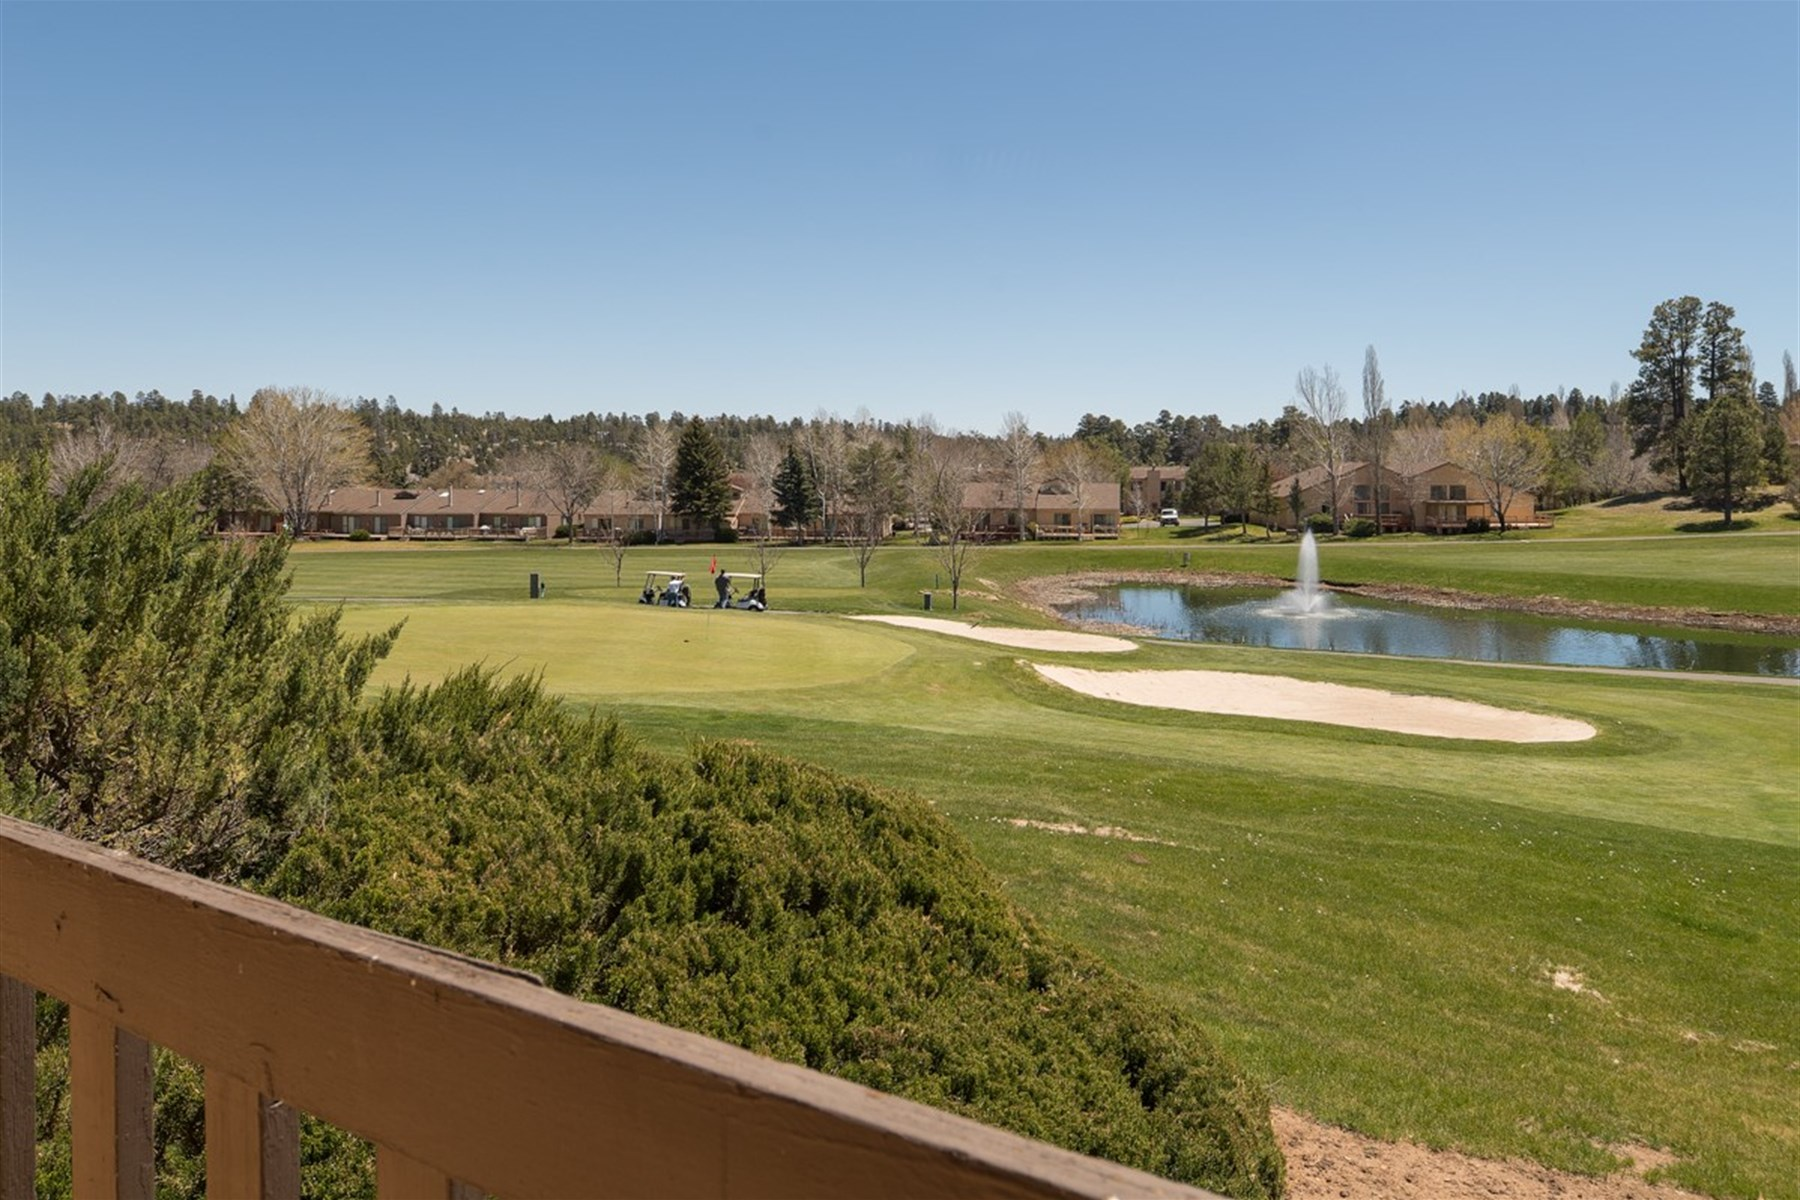 Townhouse for Sale at Dynamite views of the golf course. 2900 N Saddleback WAY 61 Flagstaff, Arizona 86004 United States